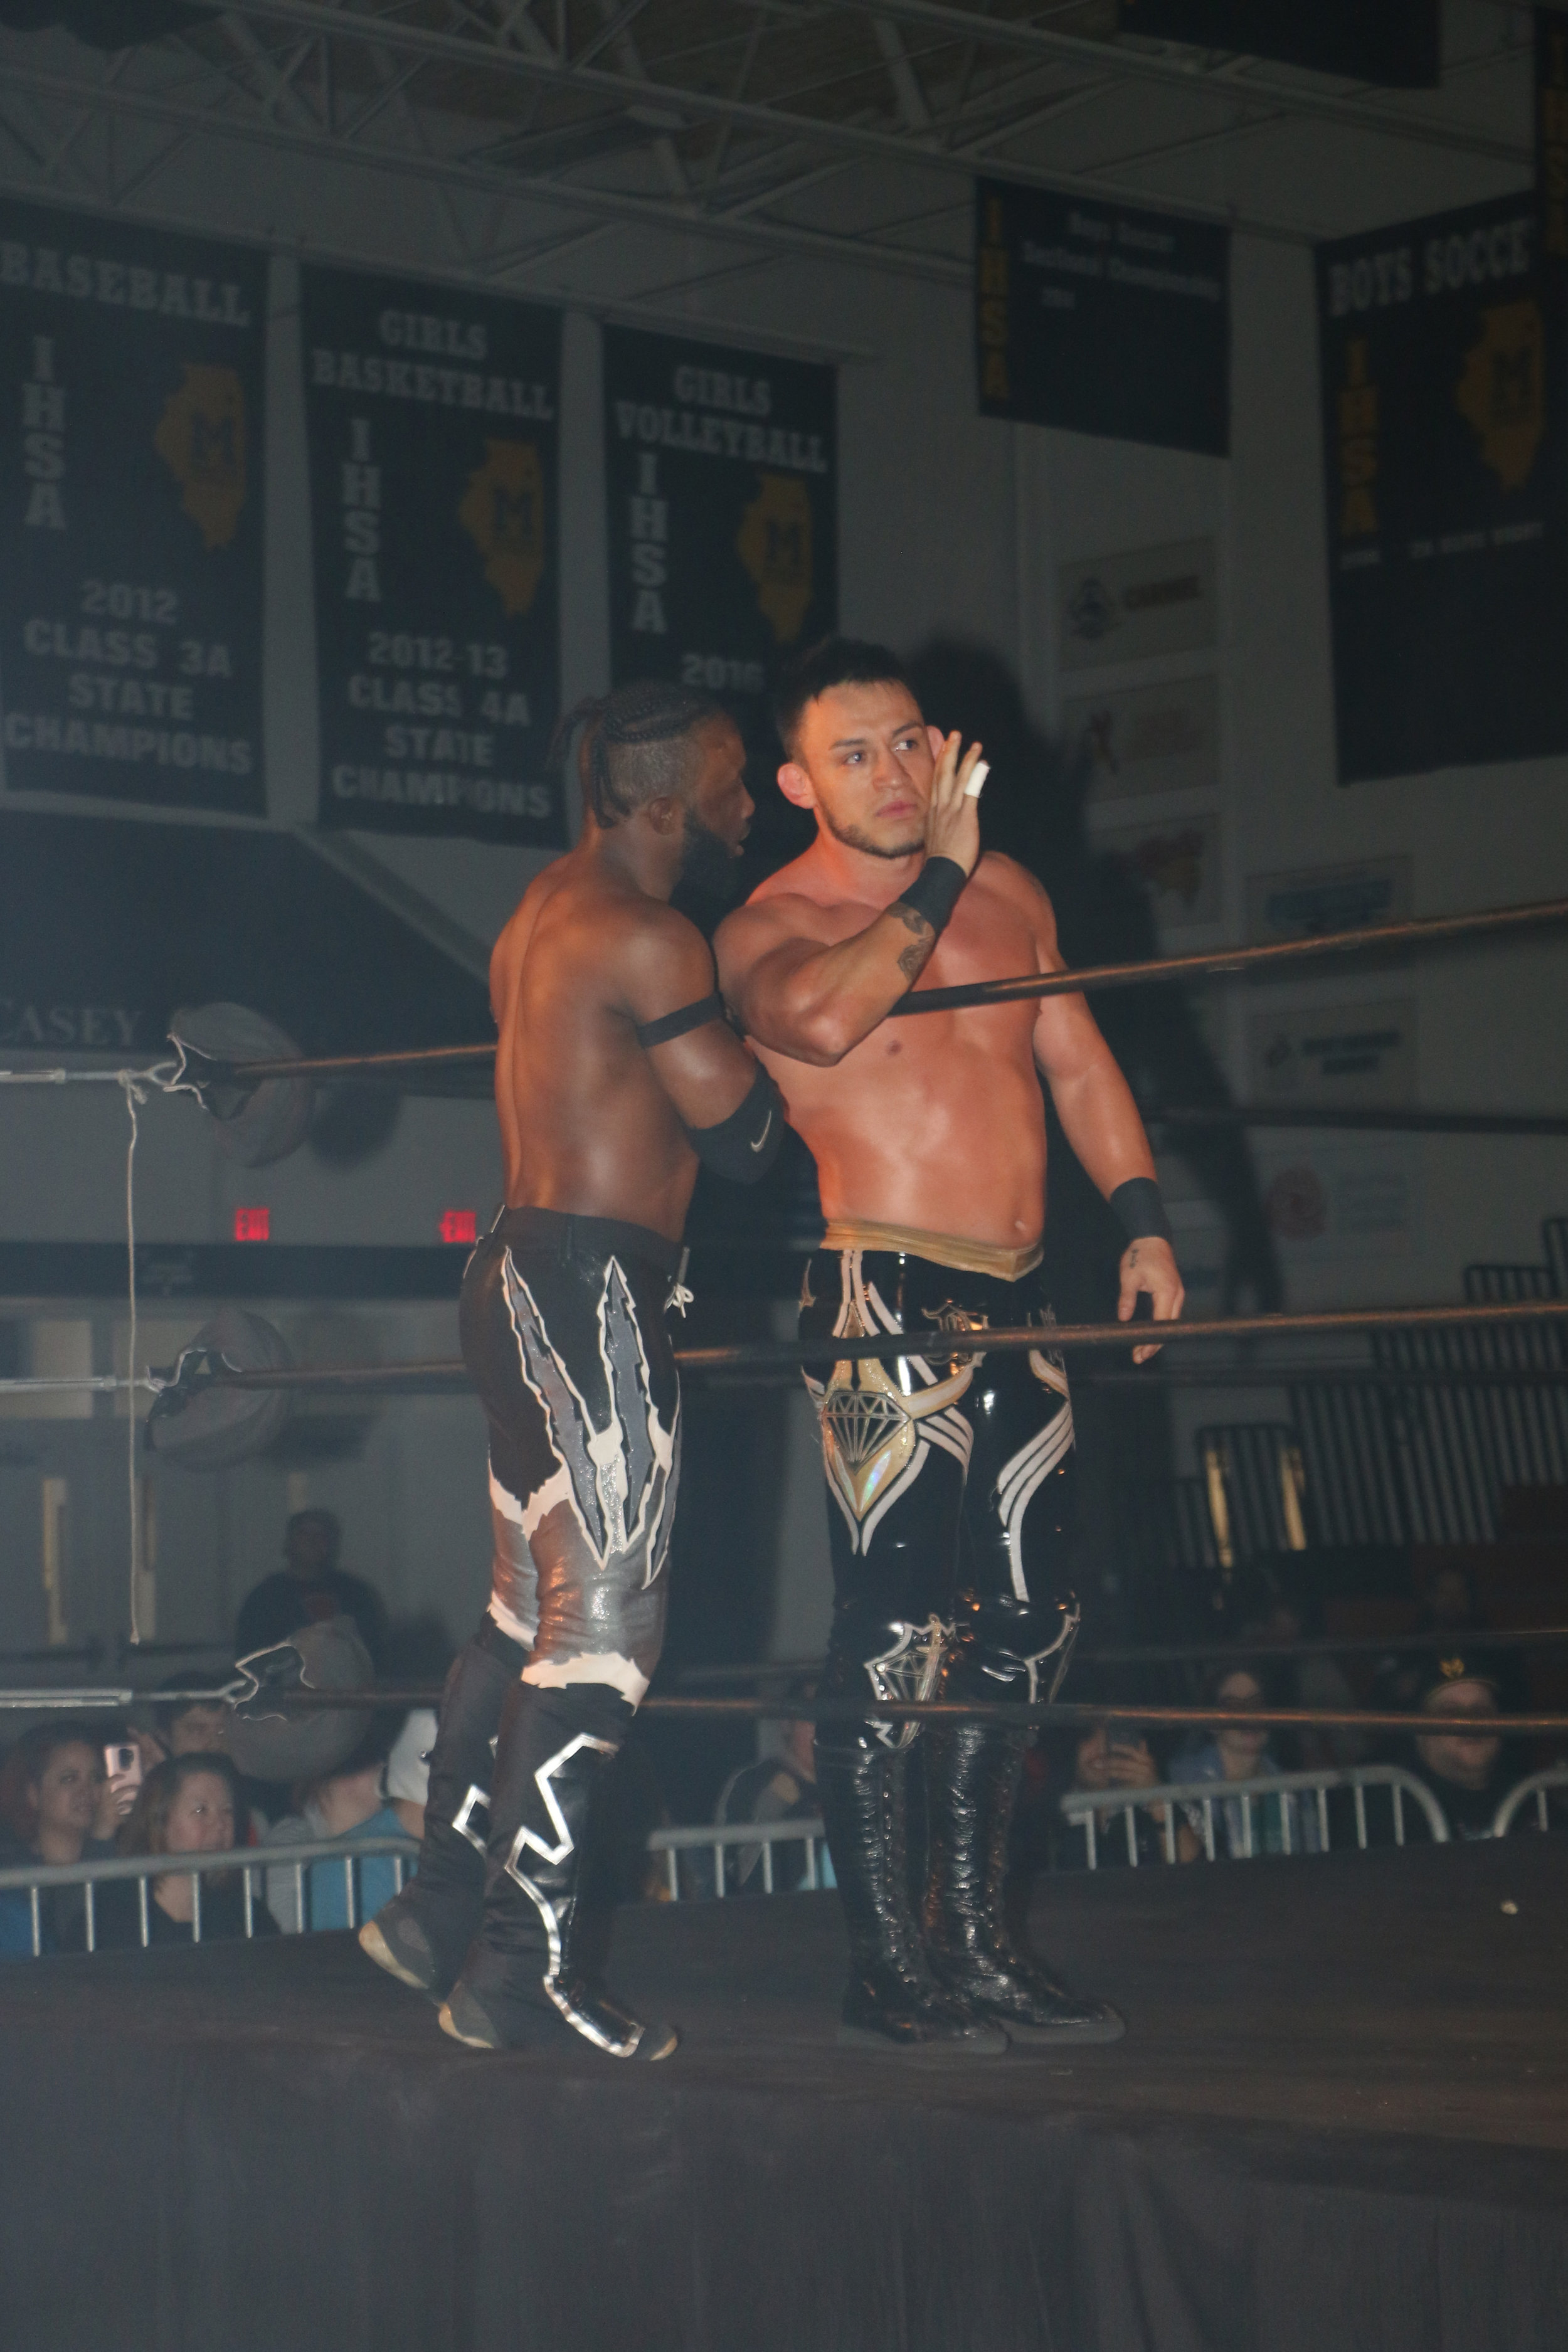 Kotto Brazil, left, and Daga before the tag team match against the Lucha Bros.